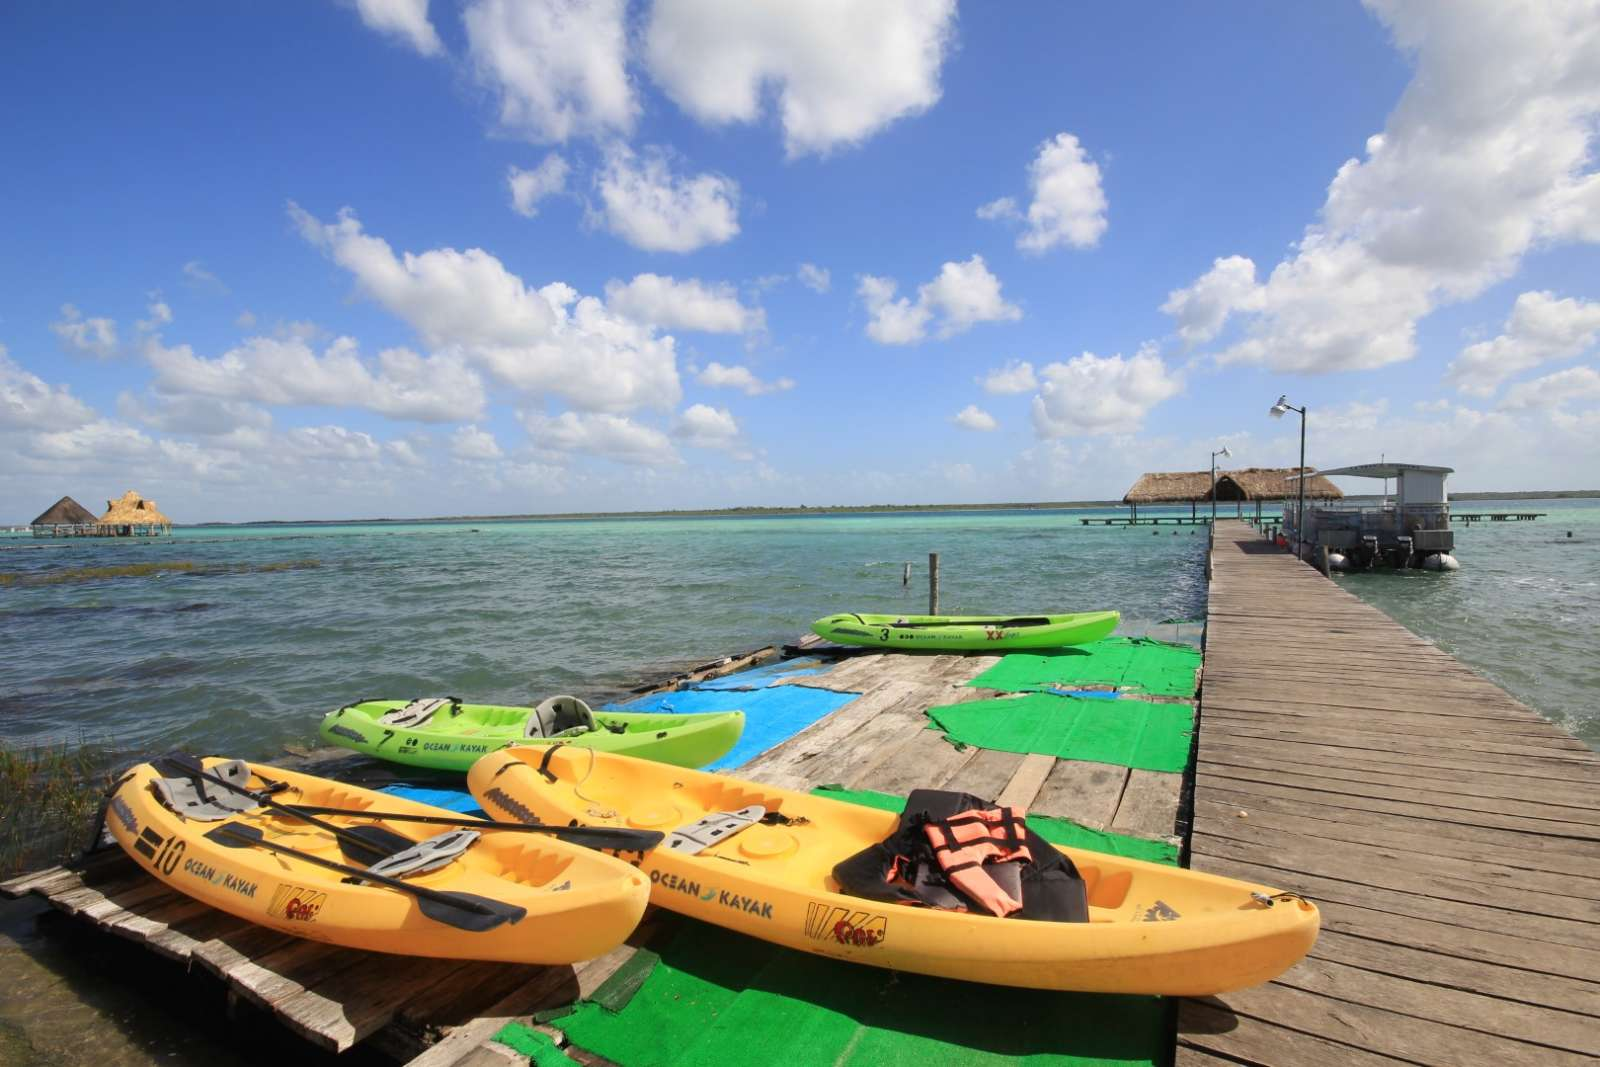 Kayaks on jetty at Laguna Bacalar